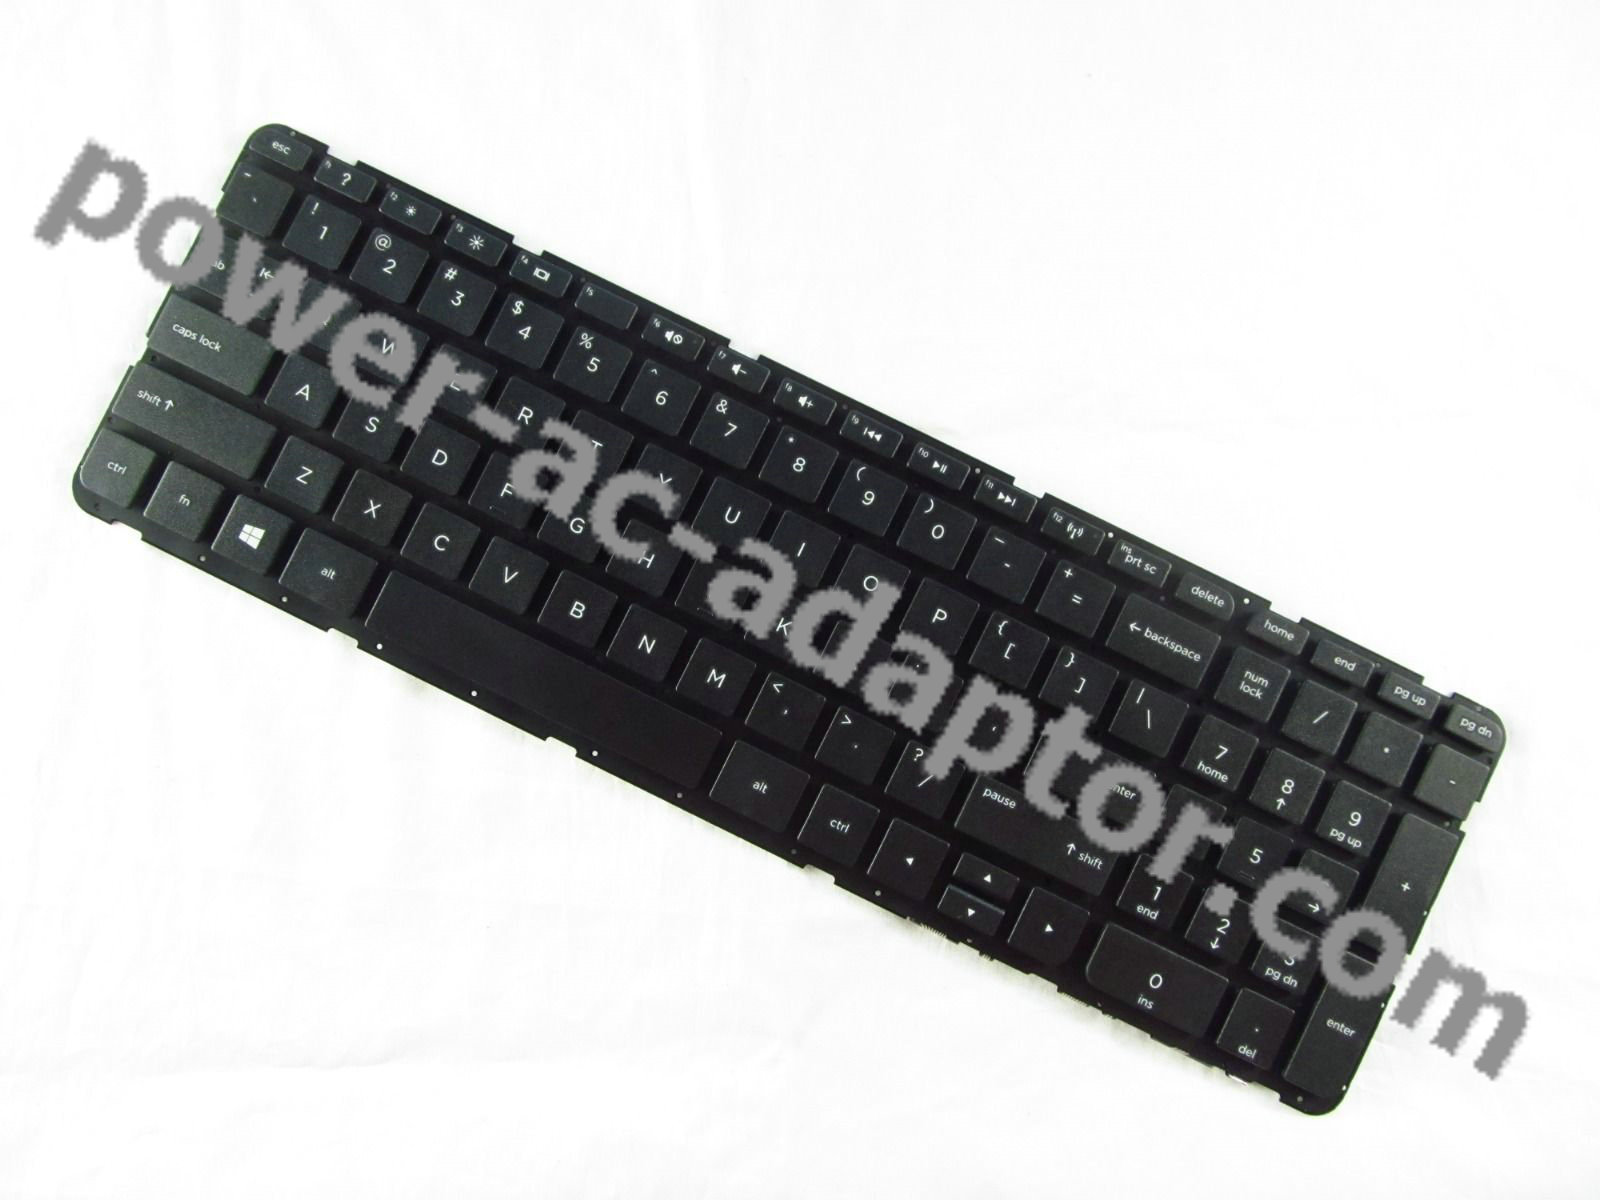 New Brown Keyboard HP Pavilion DV4-1100 DV4-1200 DV4-1300 DV4-1400 486901-001